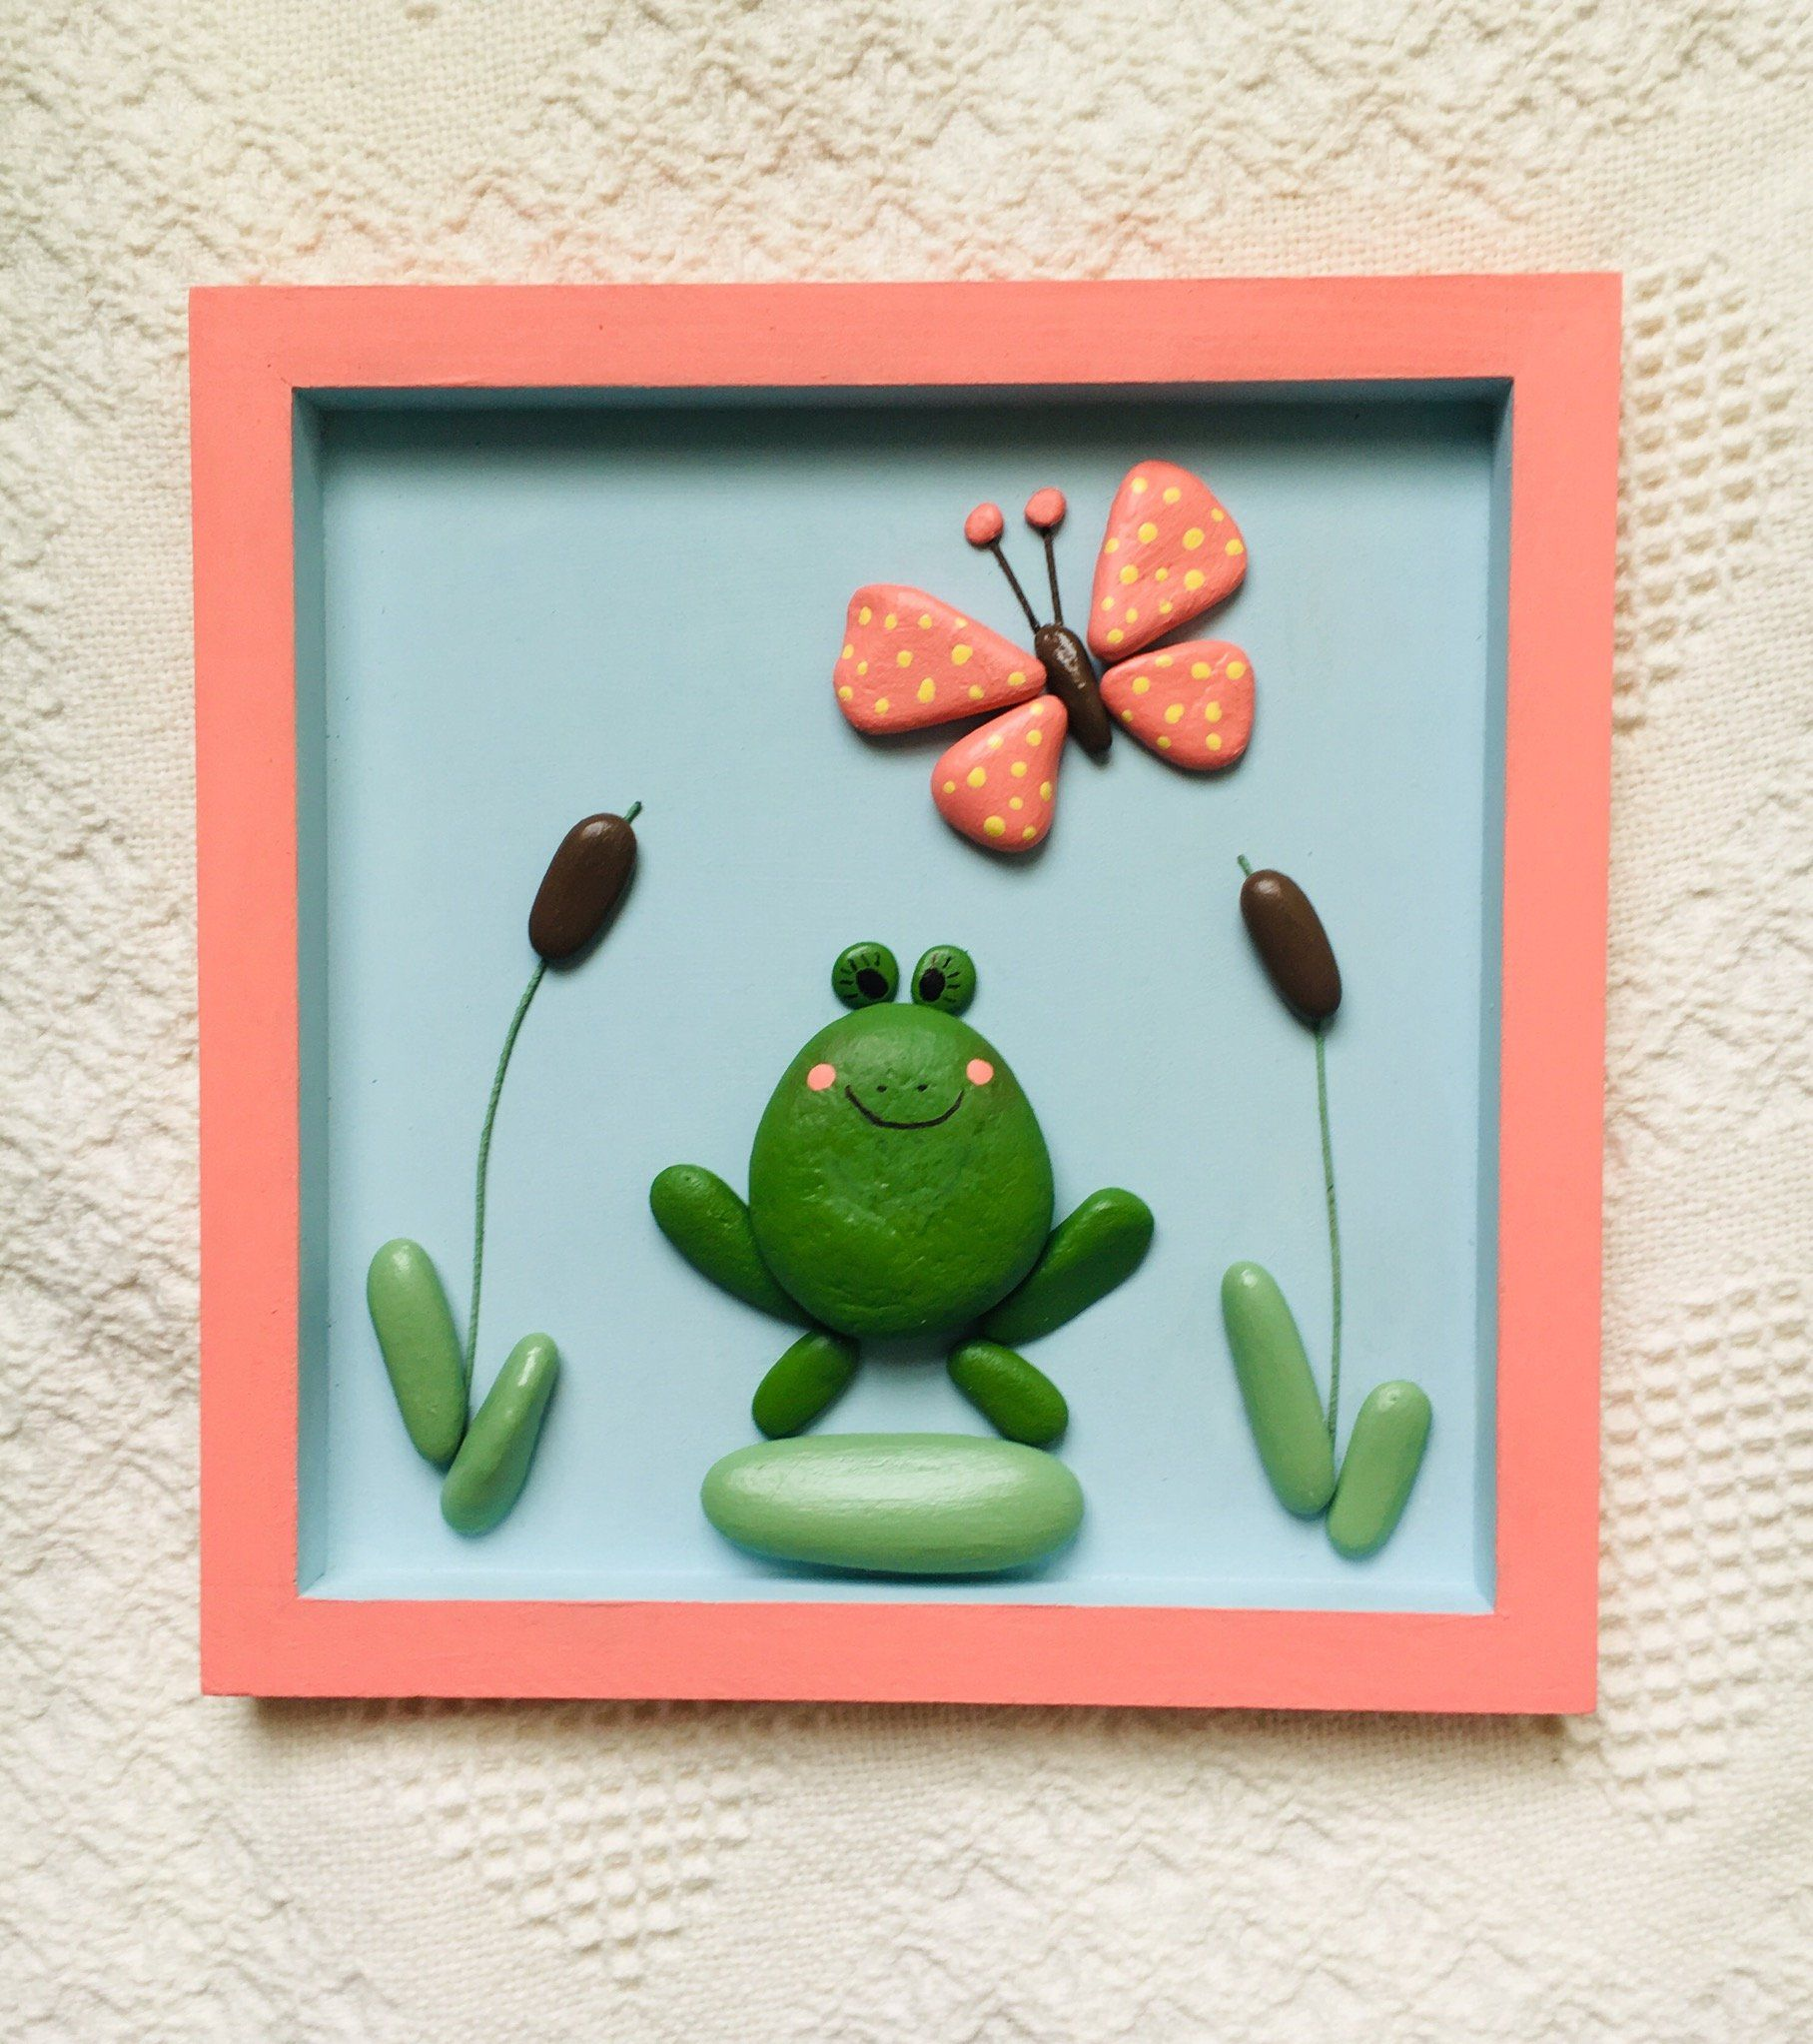 Frog wall art framed, frog decor, painted stone art, wall decor for kid's bedroom, nursery decor, frog decor, unique gift, baby shower gift